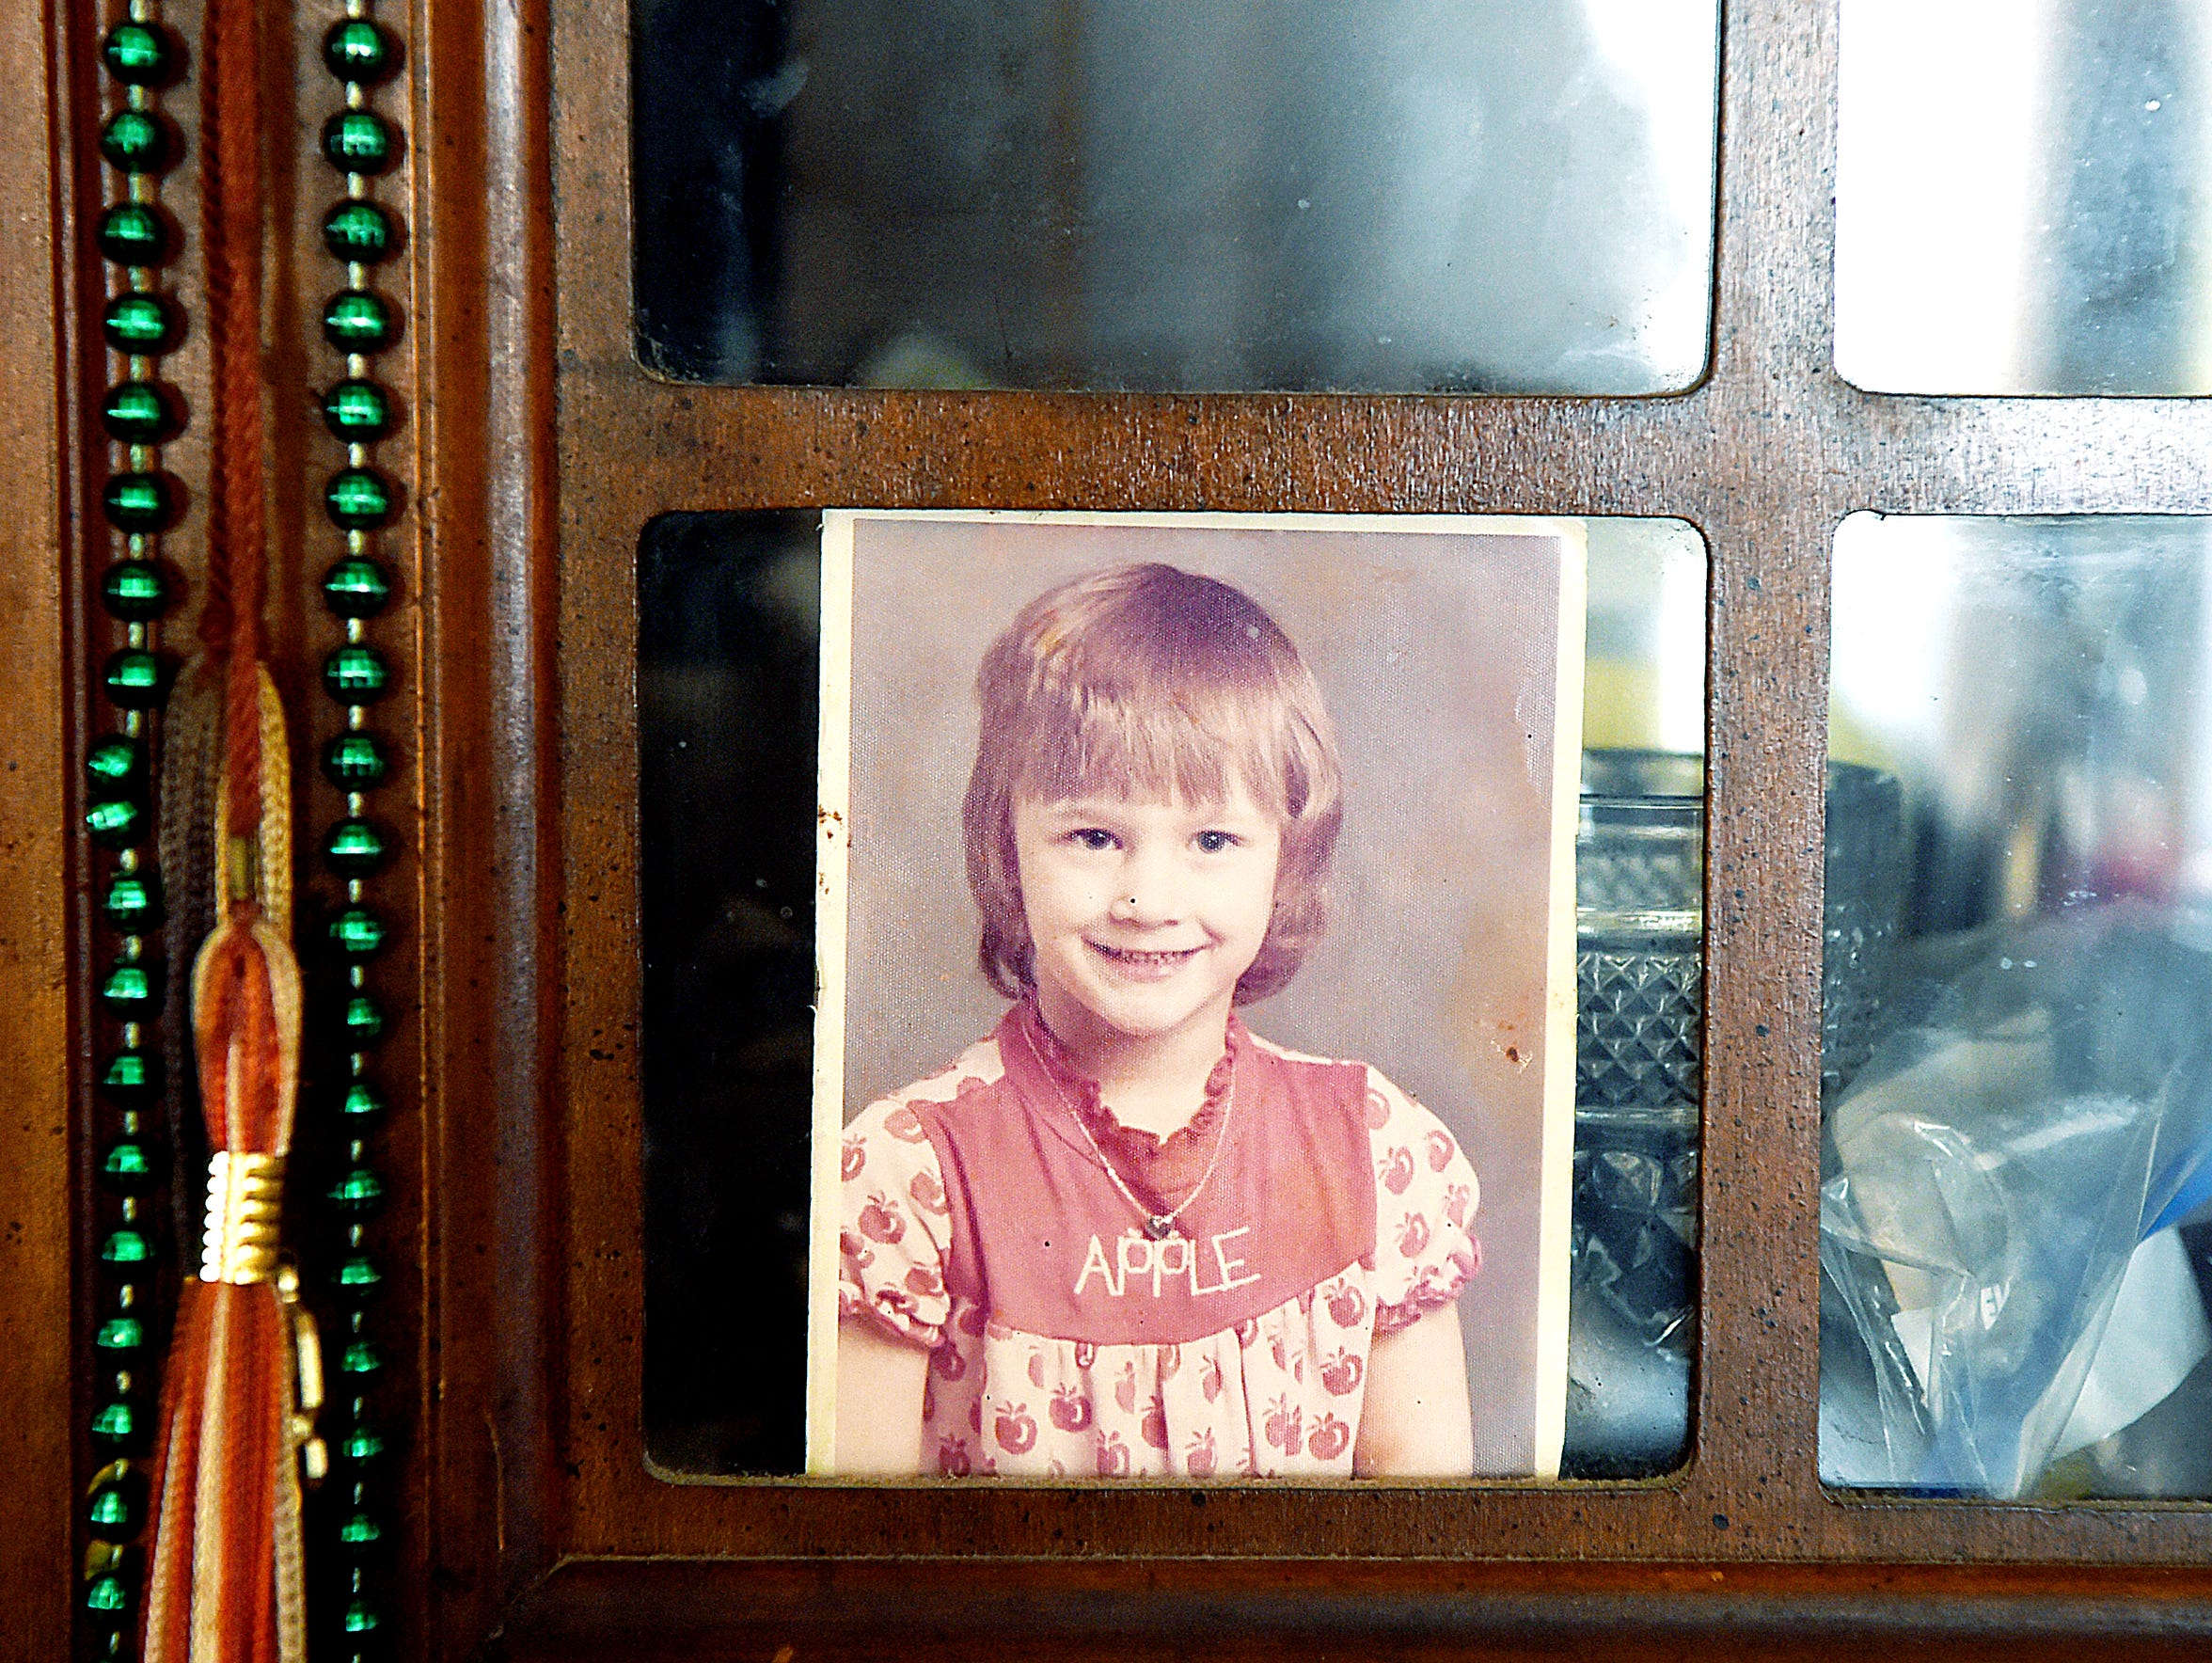 Cheri Lindsey, who was murdered in 1984 when she was 12.